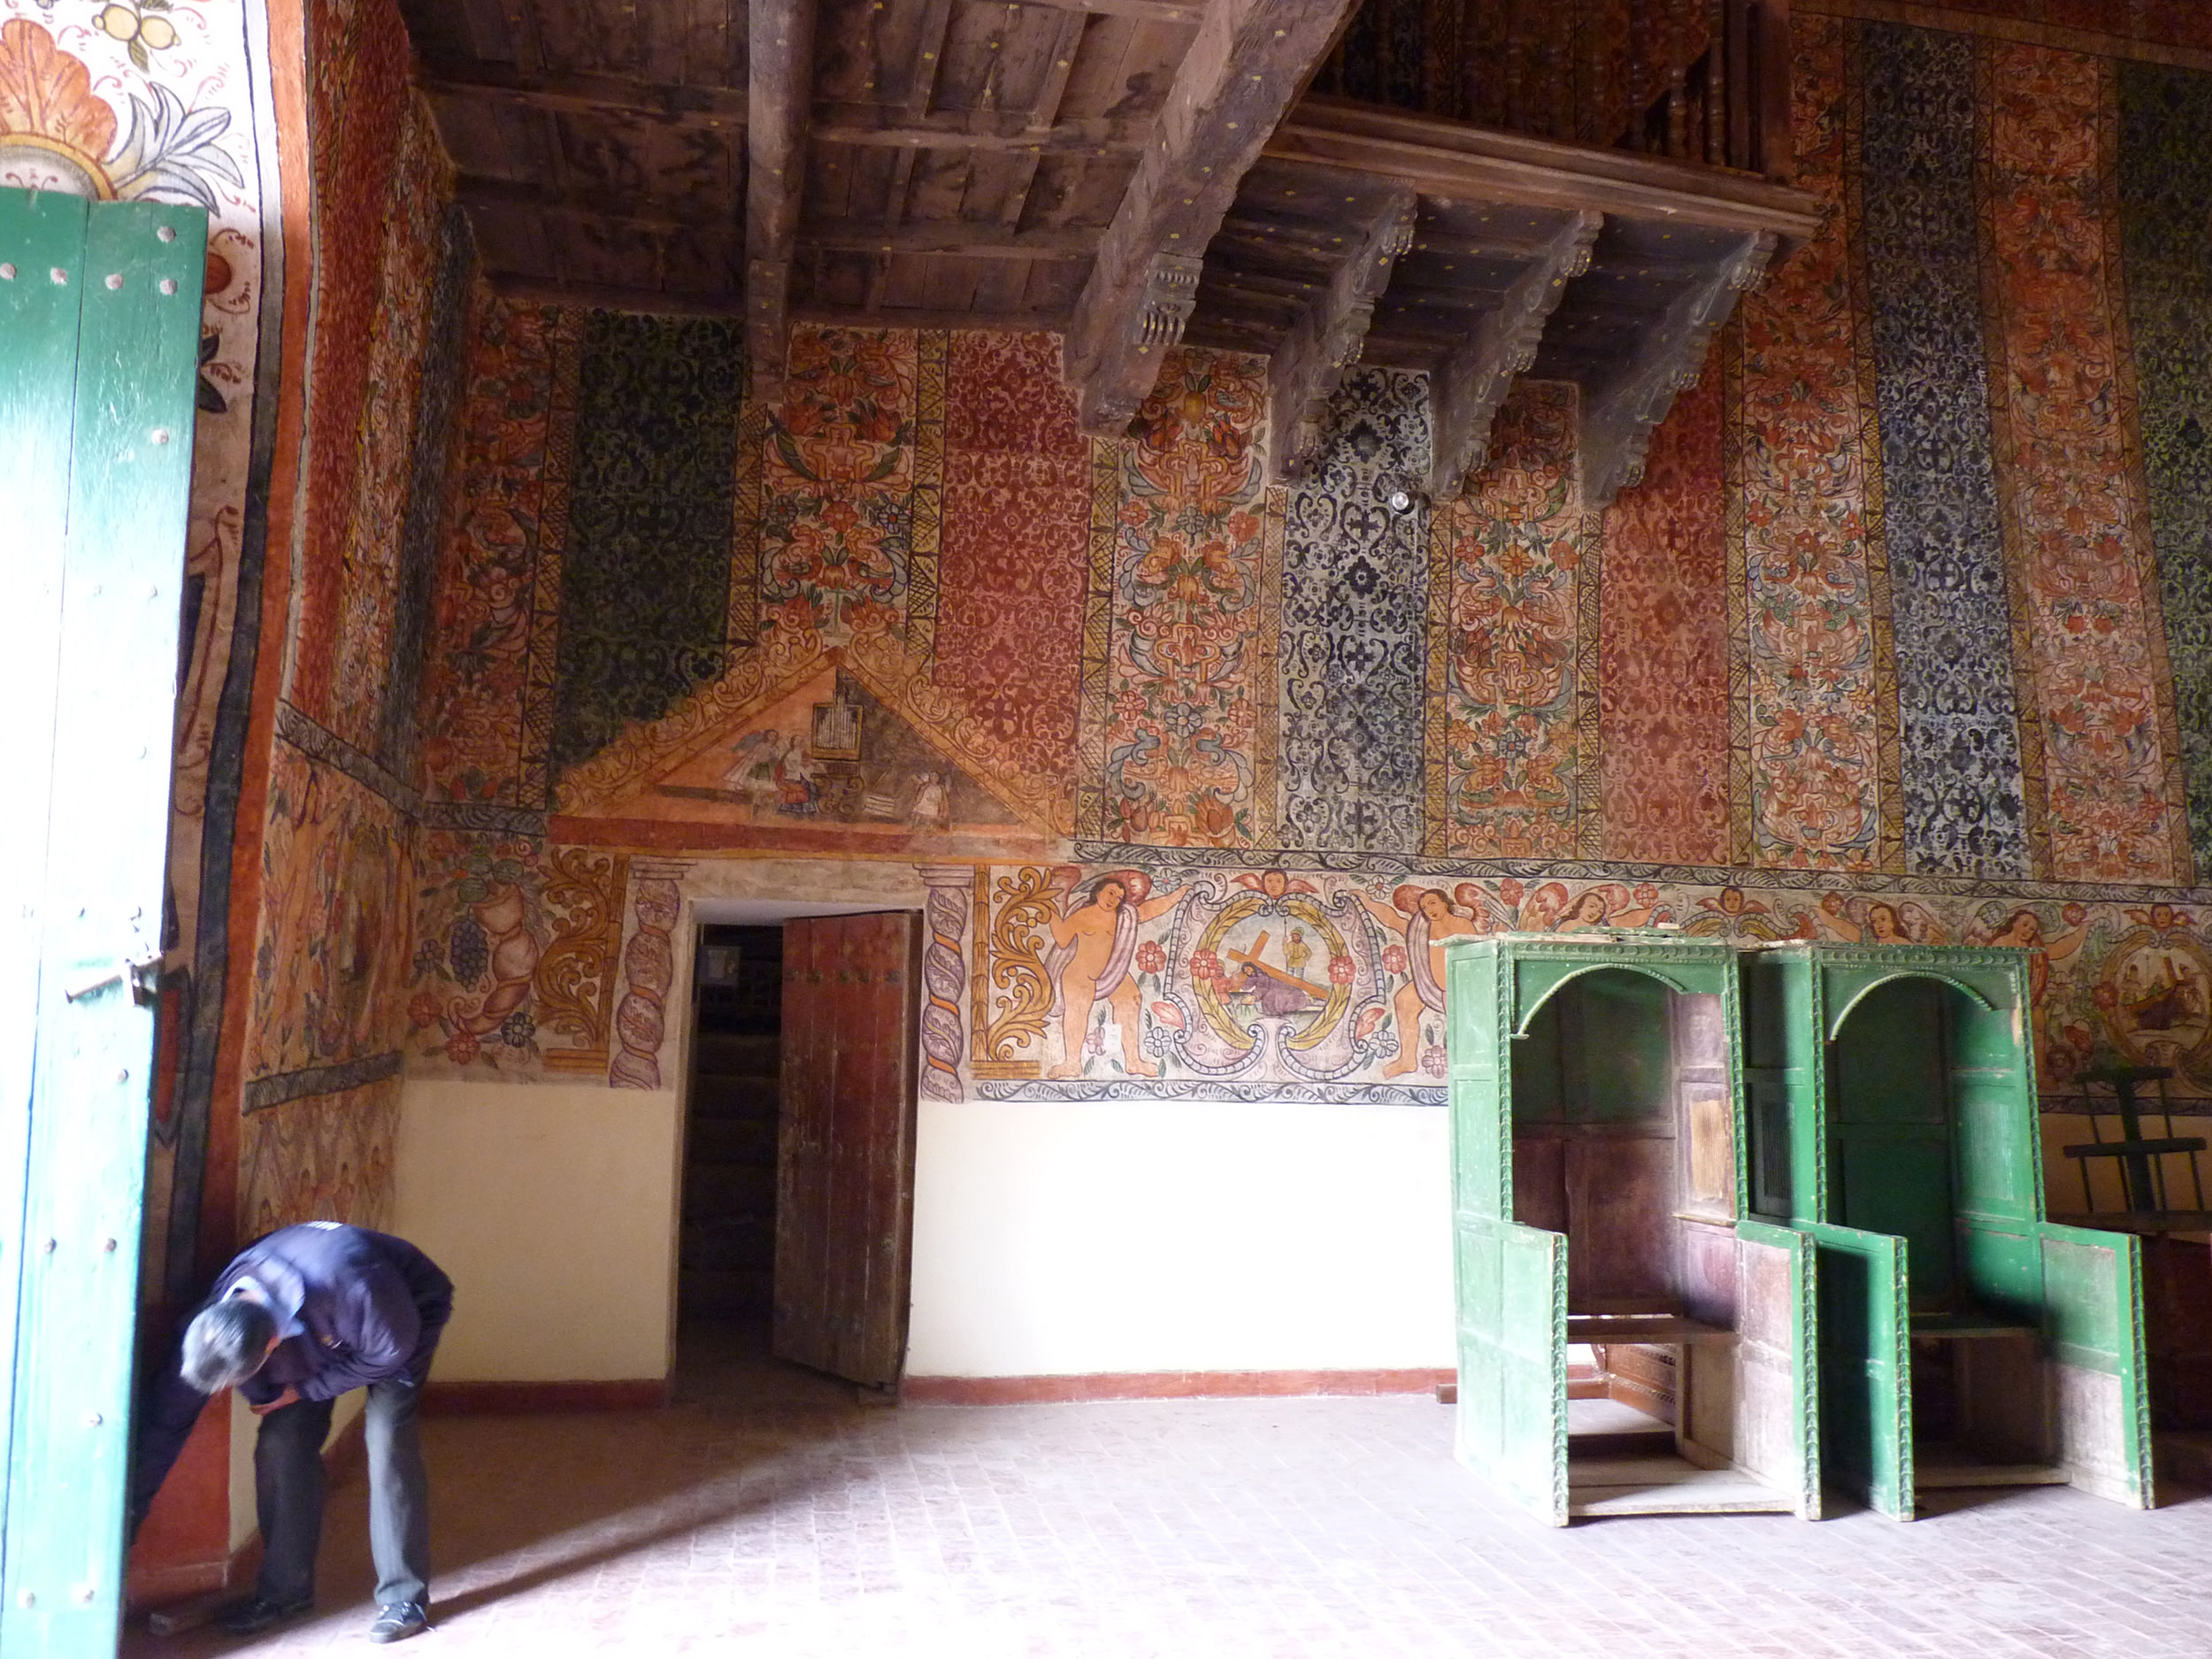 Fig. 18 View of textile murals, Church of Ocongate, Quispicanchi Province, late 18th century. Photo by author.